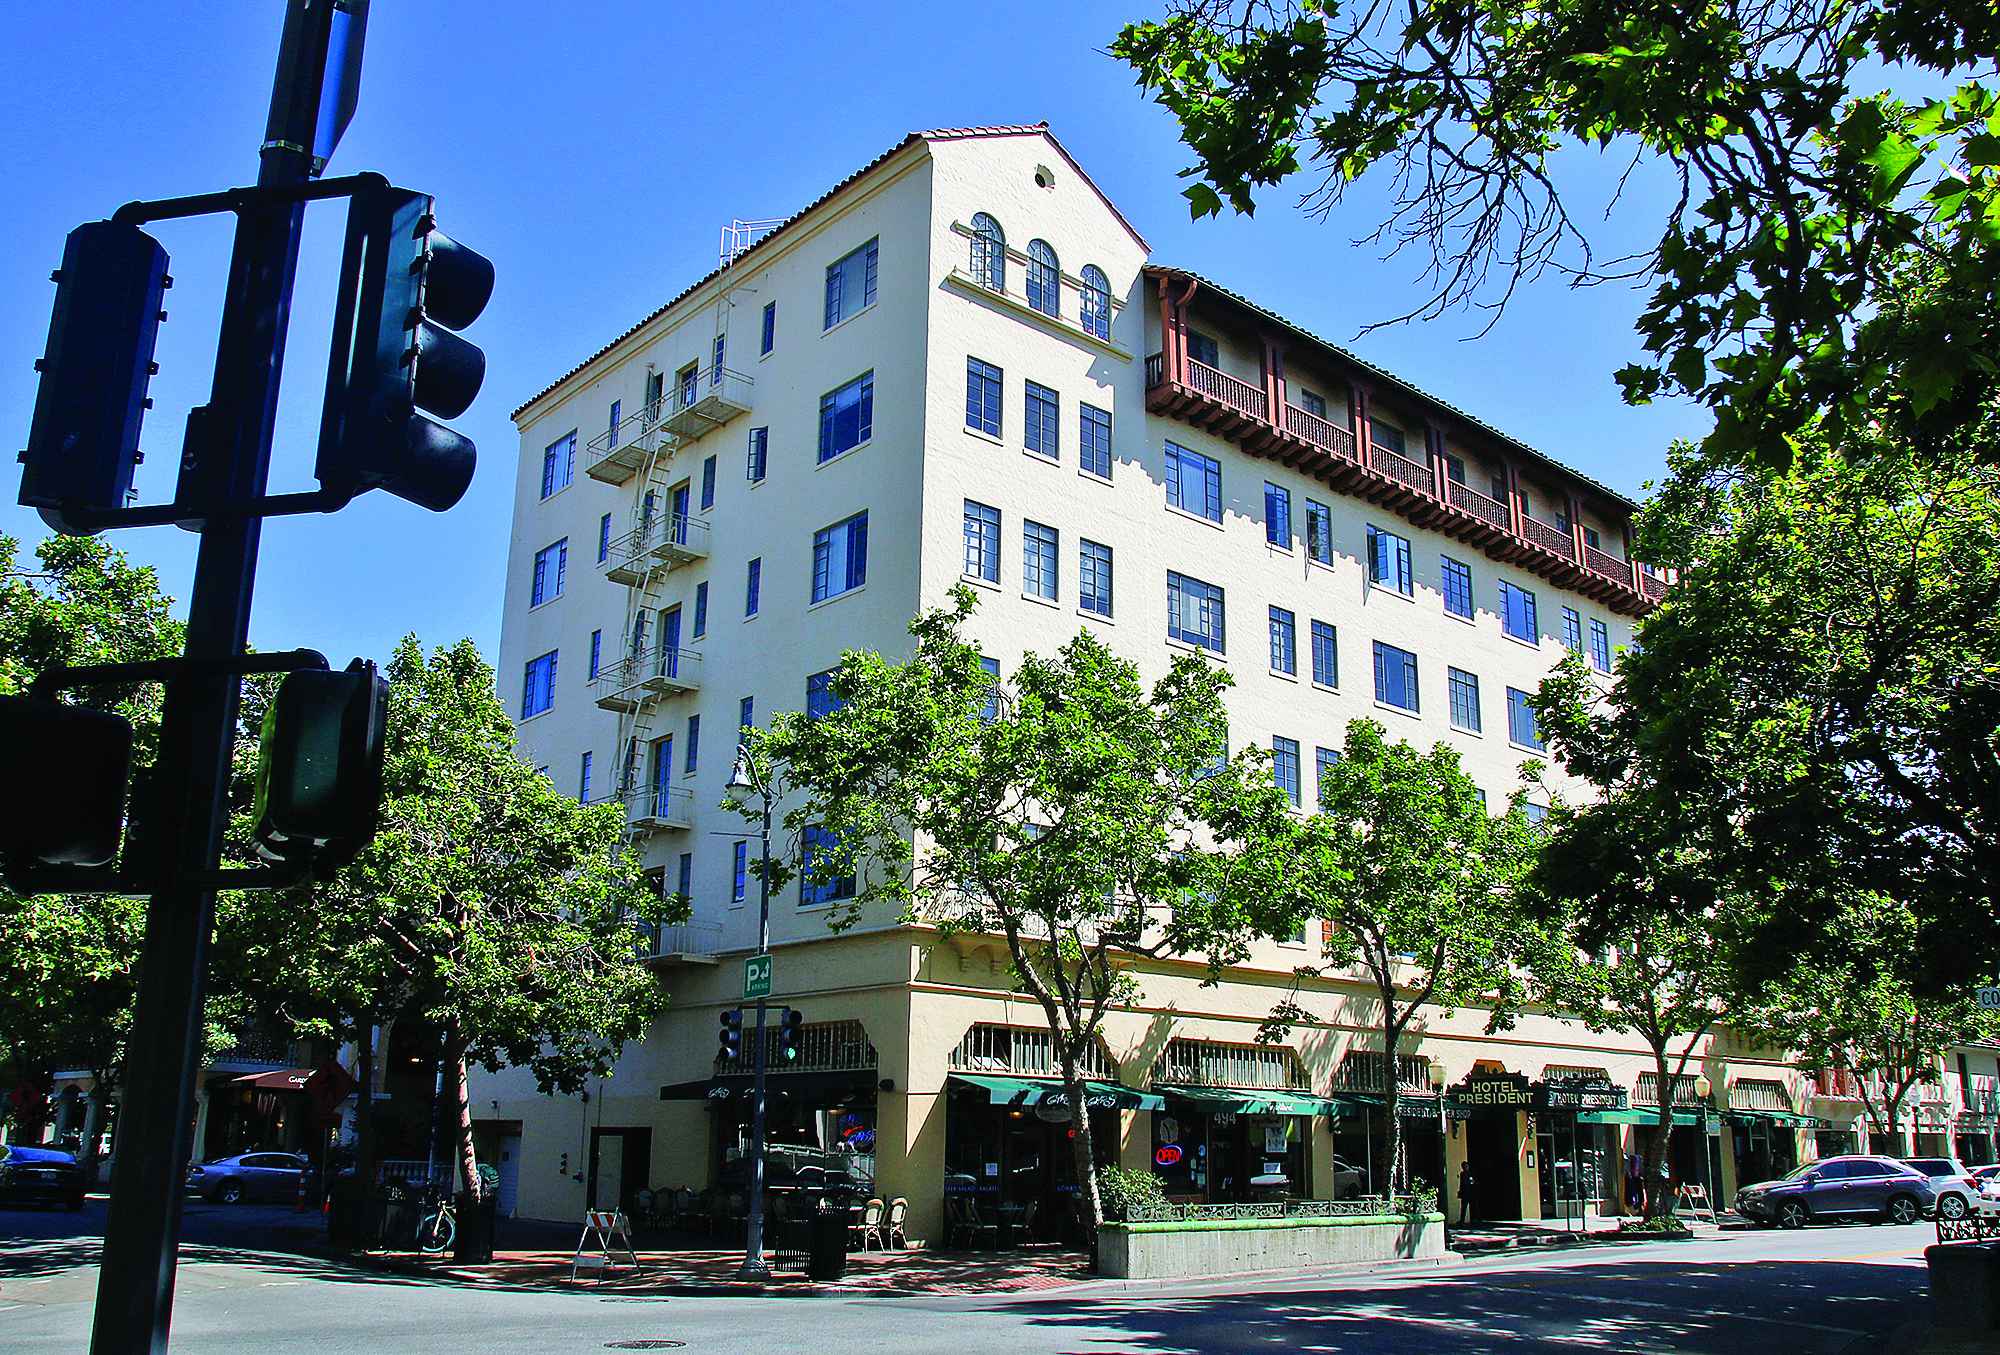 The longtime Hotel President is one of several buildings around town that exceed the city's height limit.